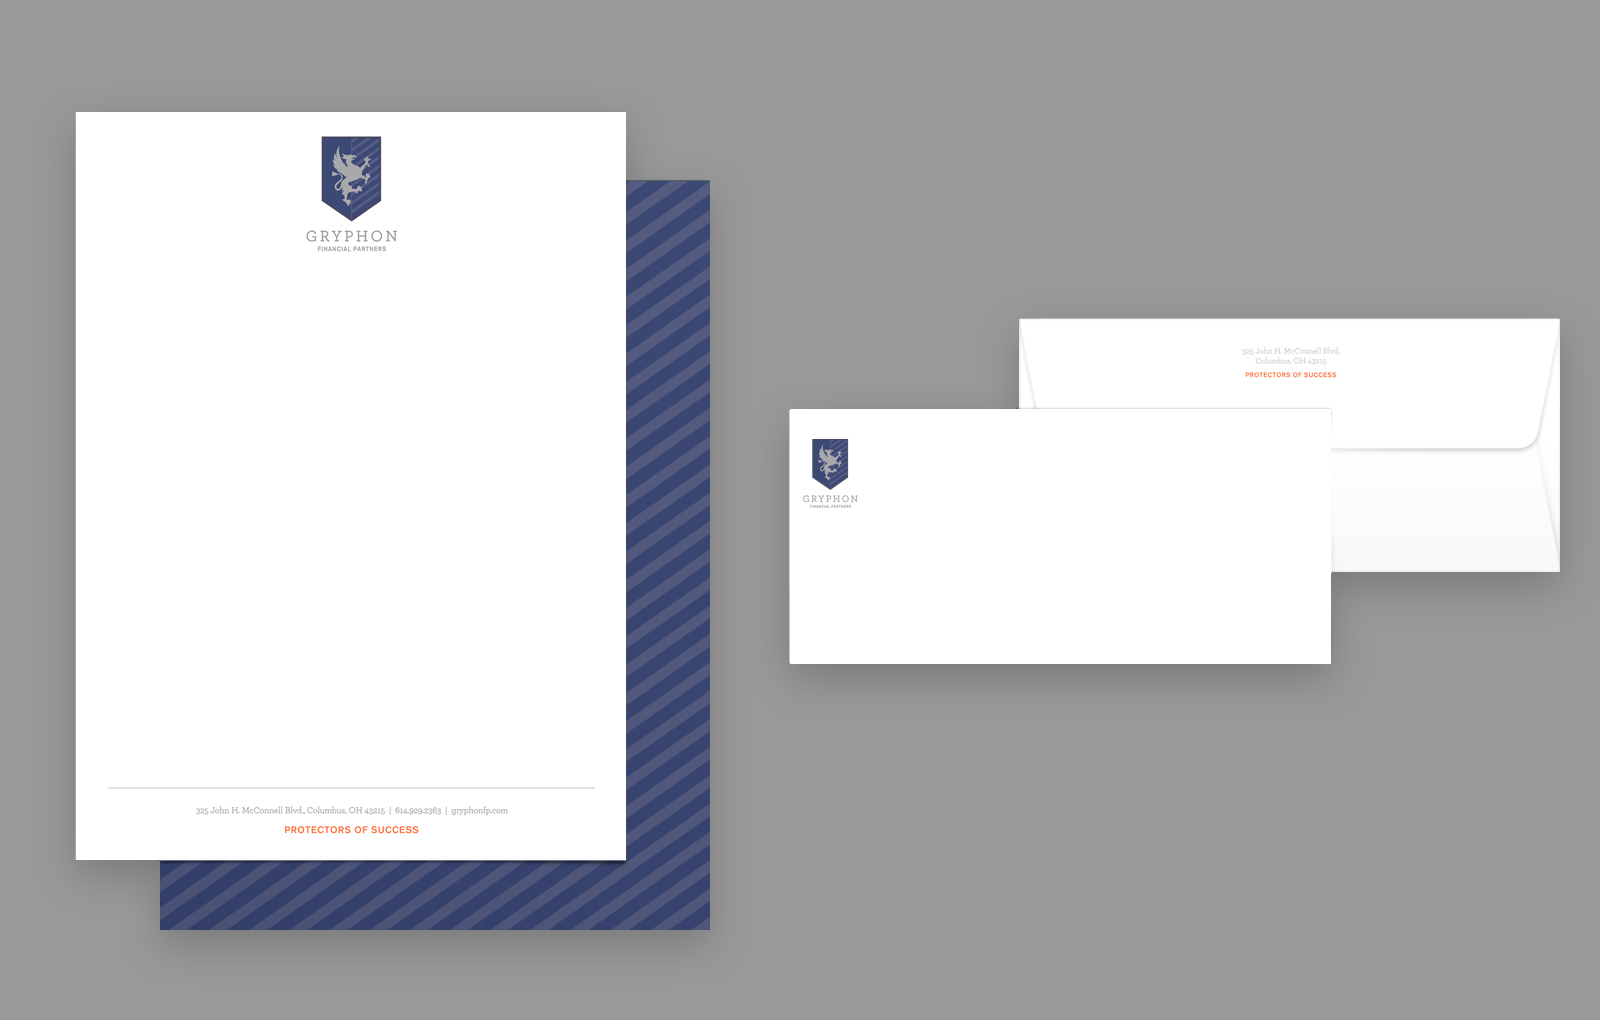 Gryphon Financial Partner's Stationary Design by Blue Flame Thinking